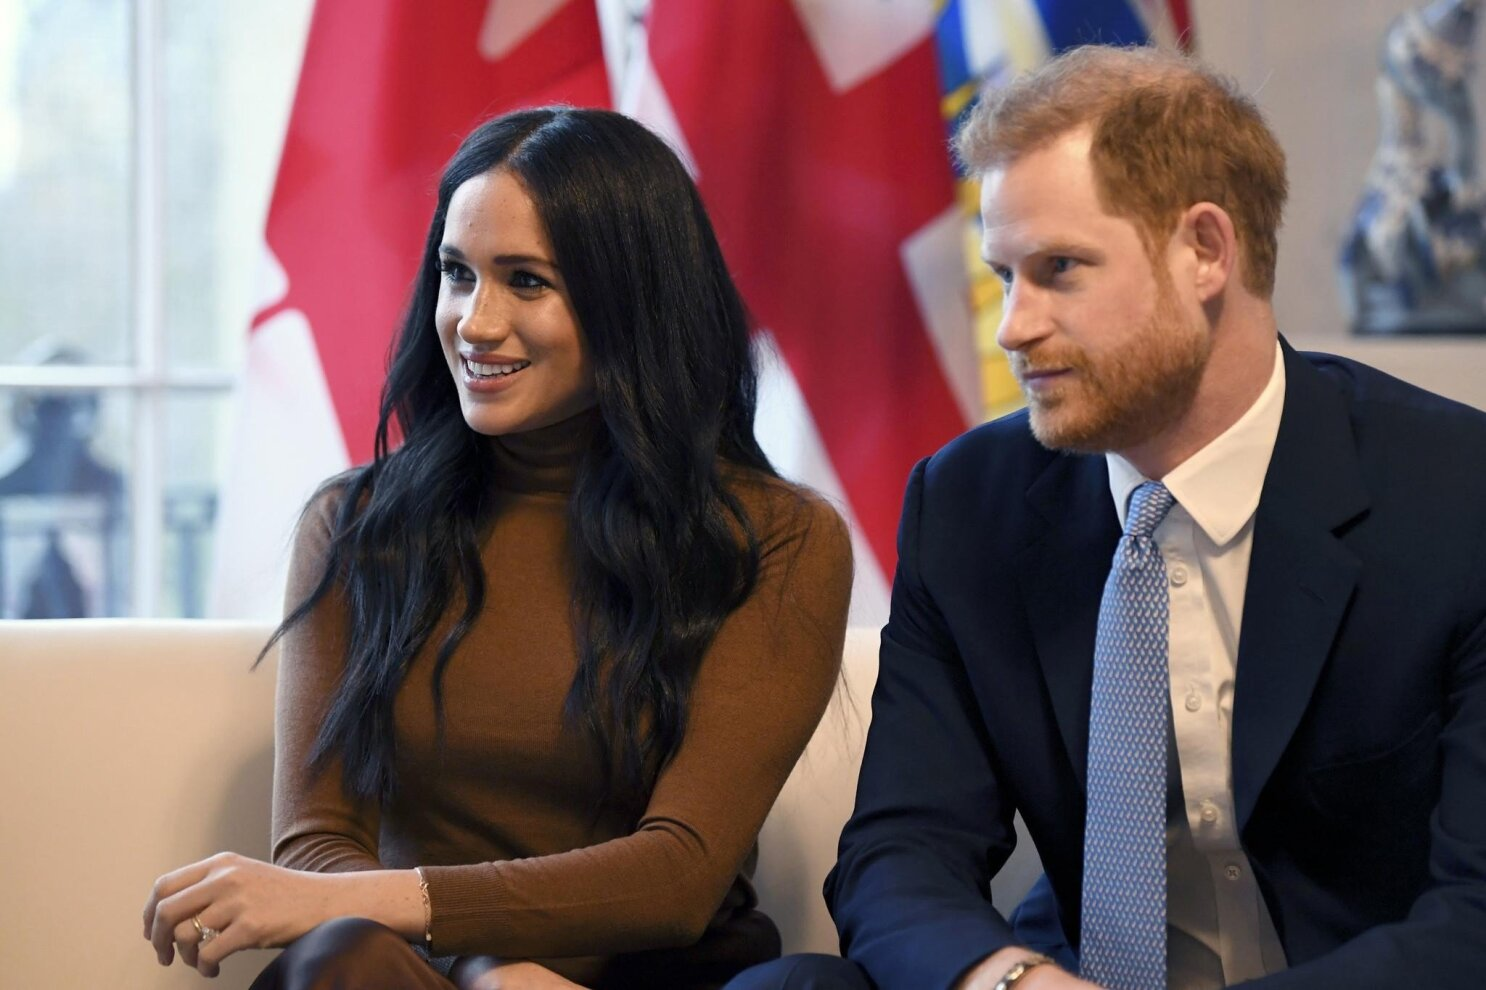 meghan markle loses first round in lawsuit against tabloid los angeles times meghan markle loses first round in